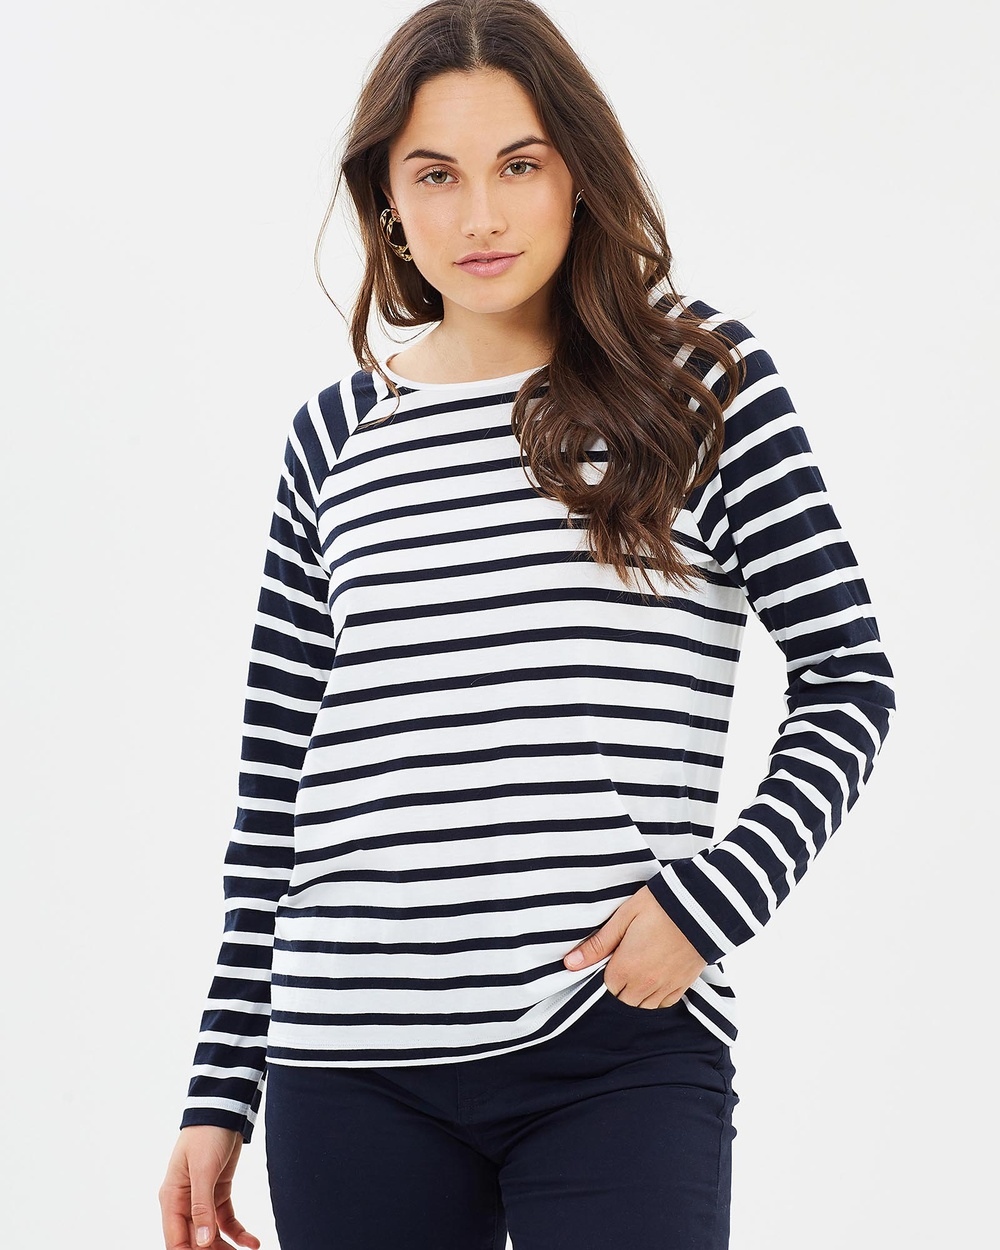 Sportscraft Mallory Mixed Stripe Tee Tops Navy & Ivory Mallory Mixed Stripe Tee